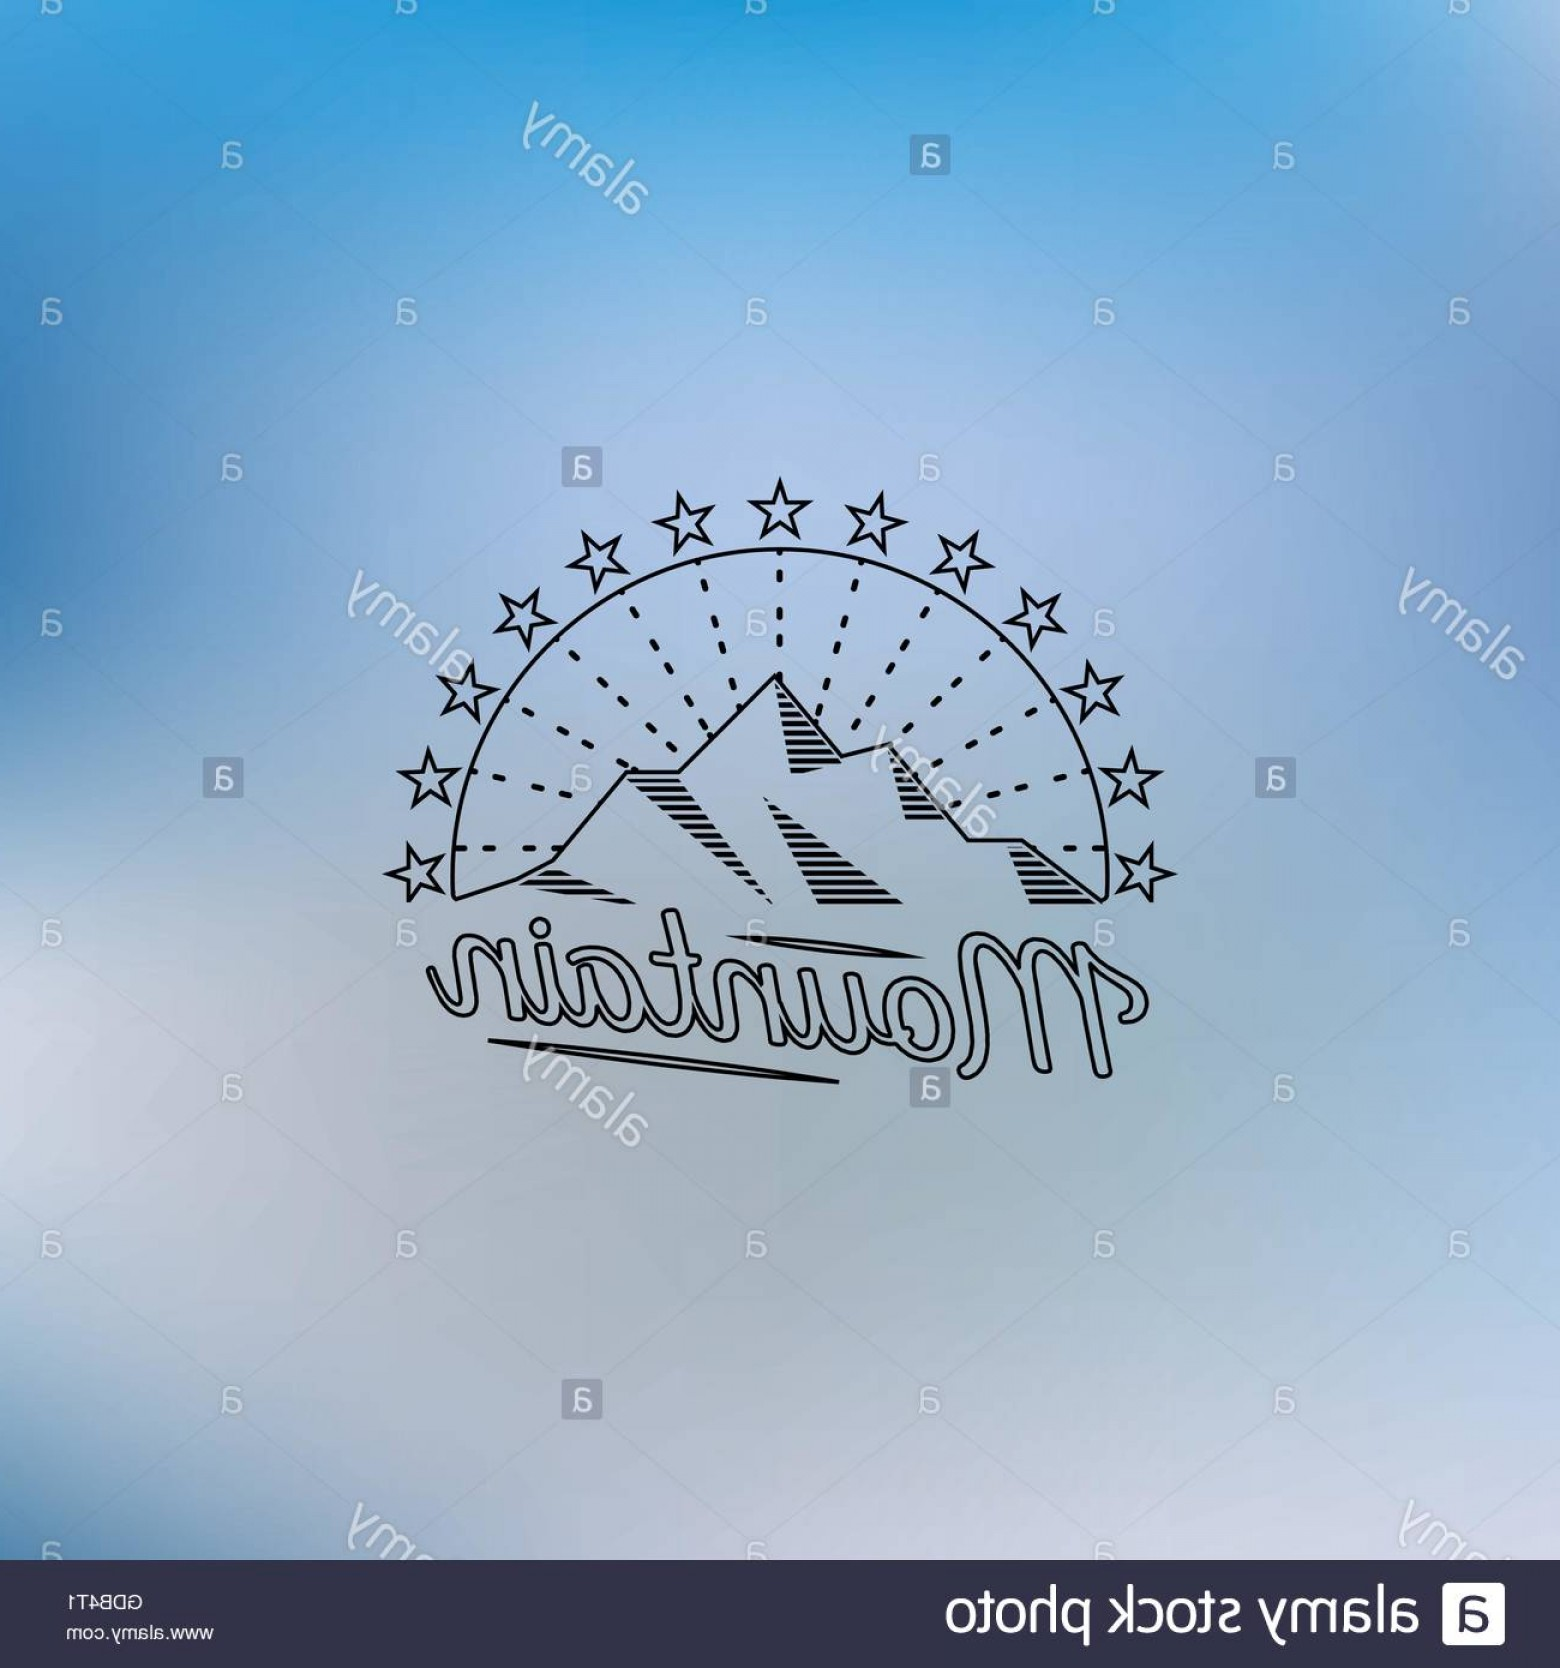 Hipster Logo Vectors Mountain: Stock Photo Mountain Lineart Logo Mountain Hipster Logo Mountain Logo Mountain